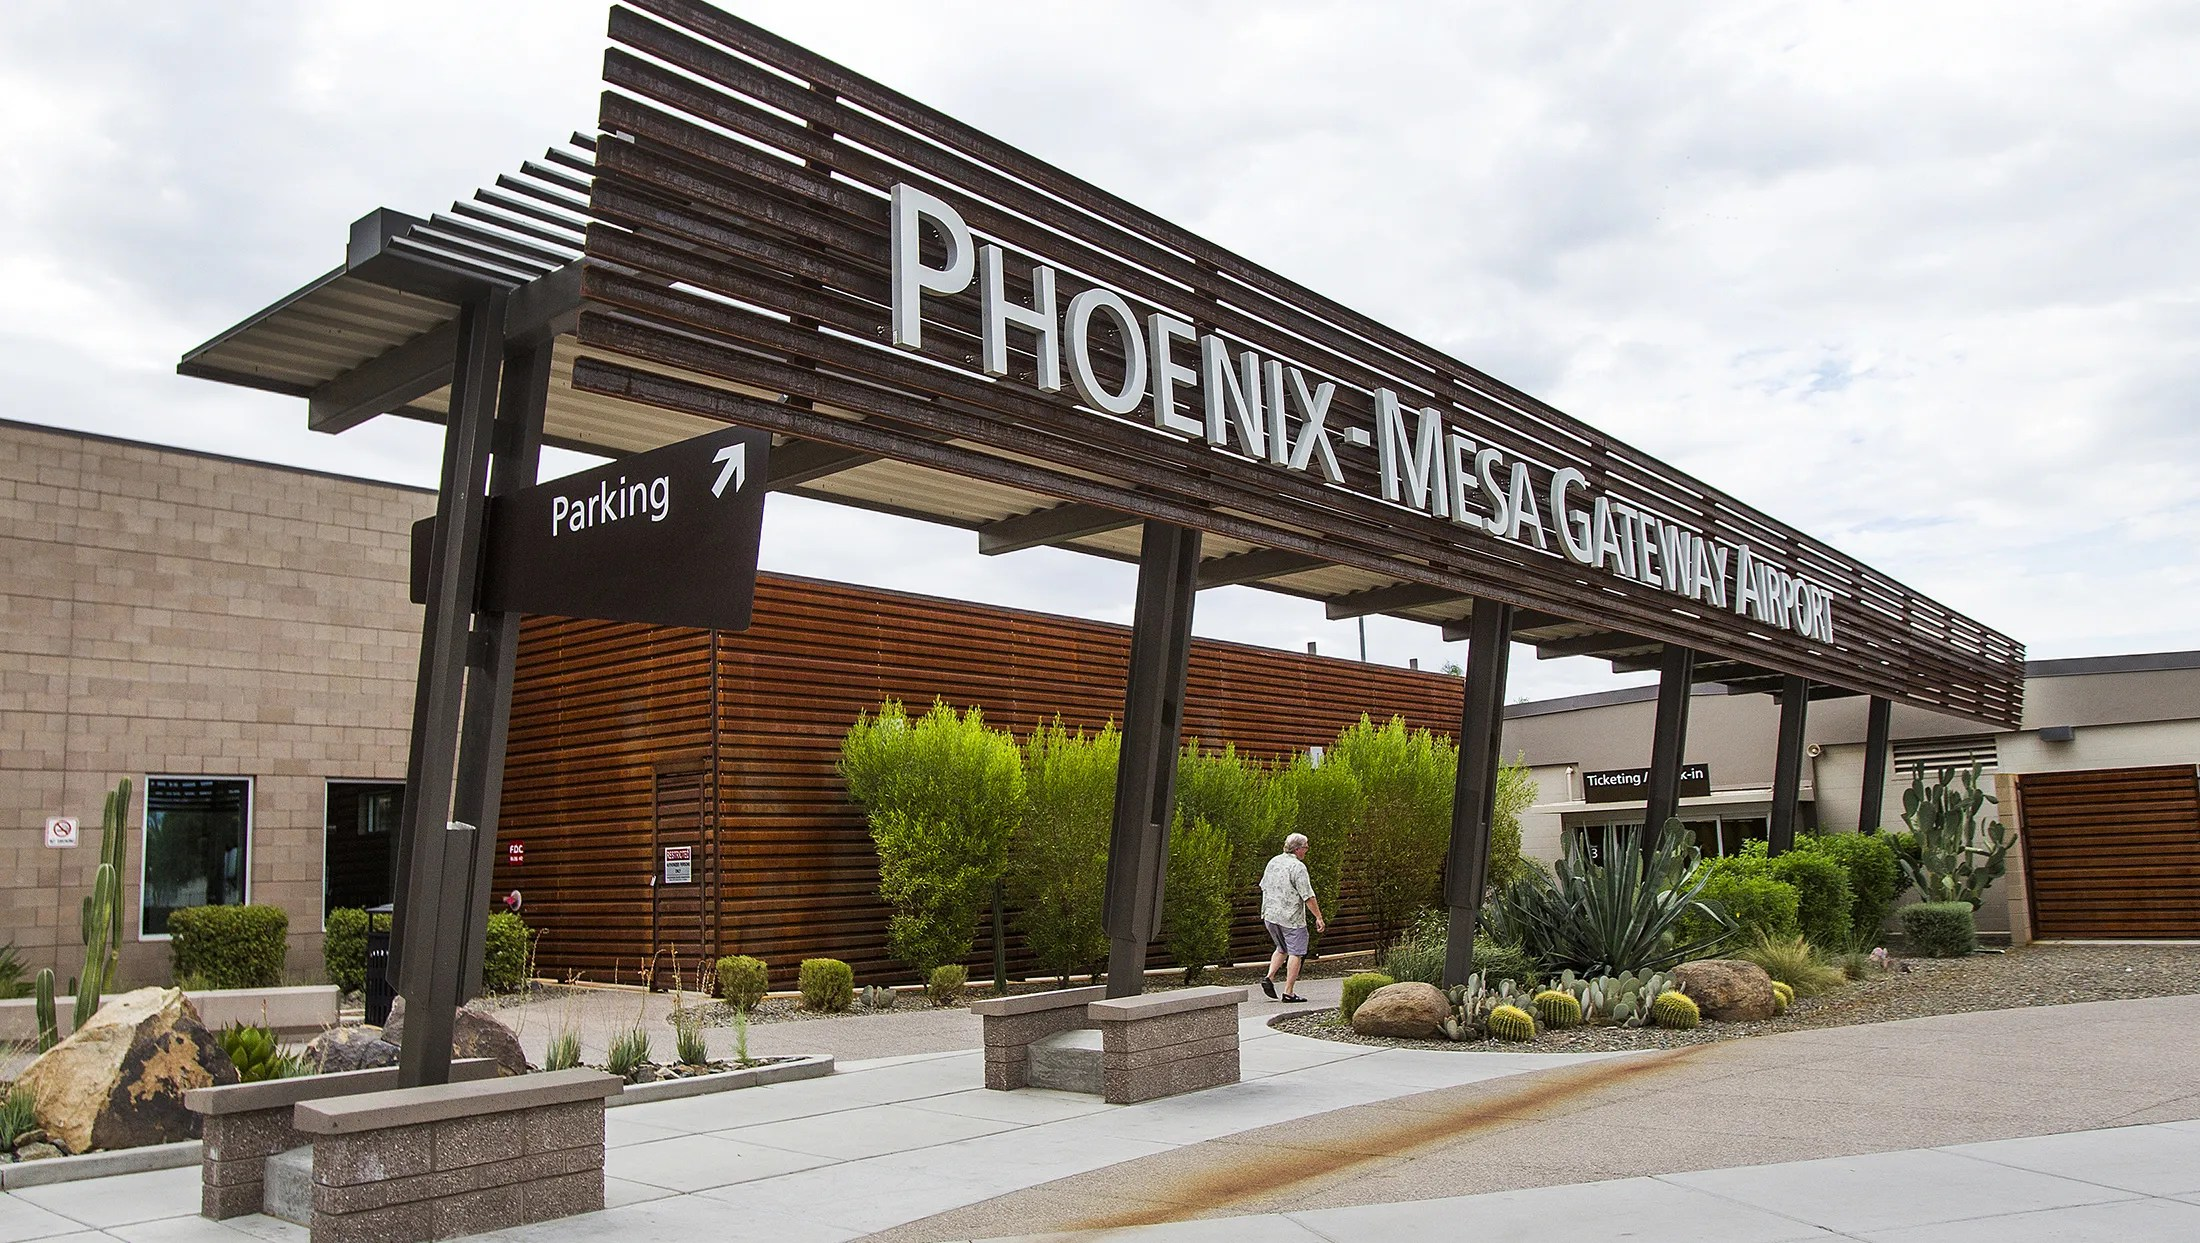 Canada flights coming to PhoenixMesa Gateway